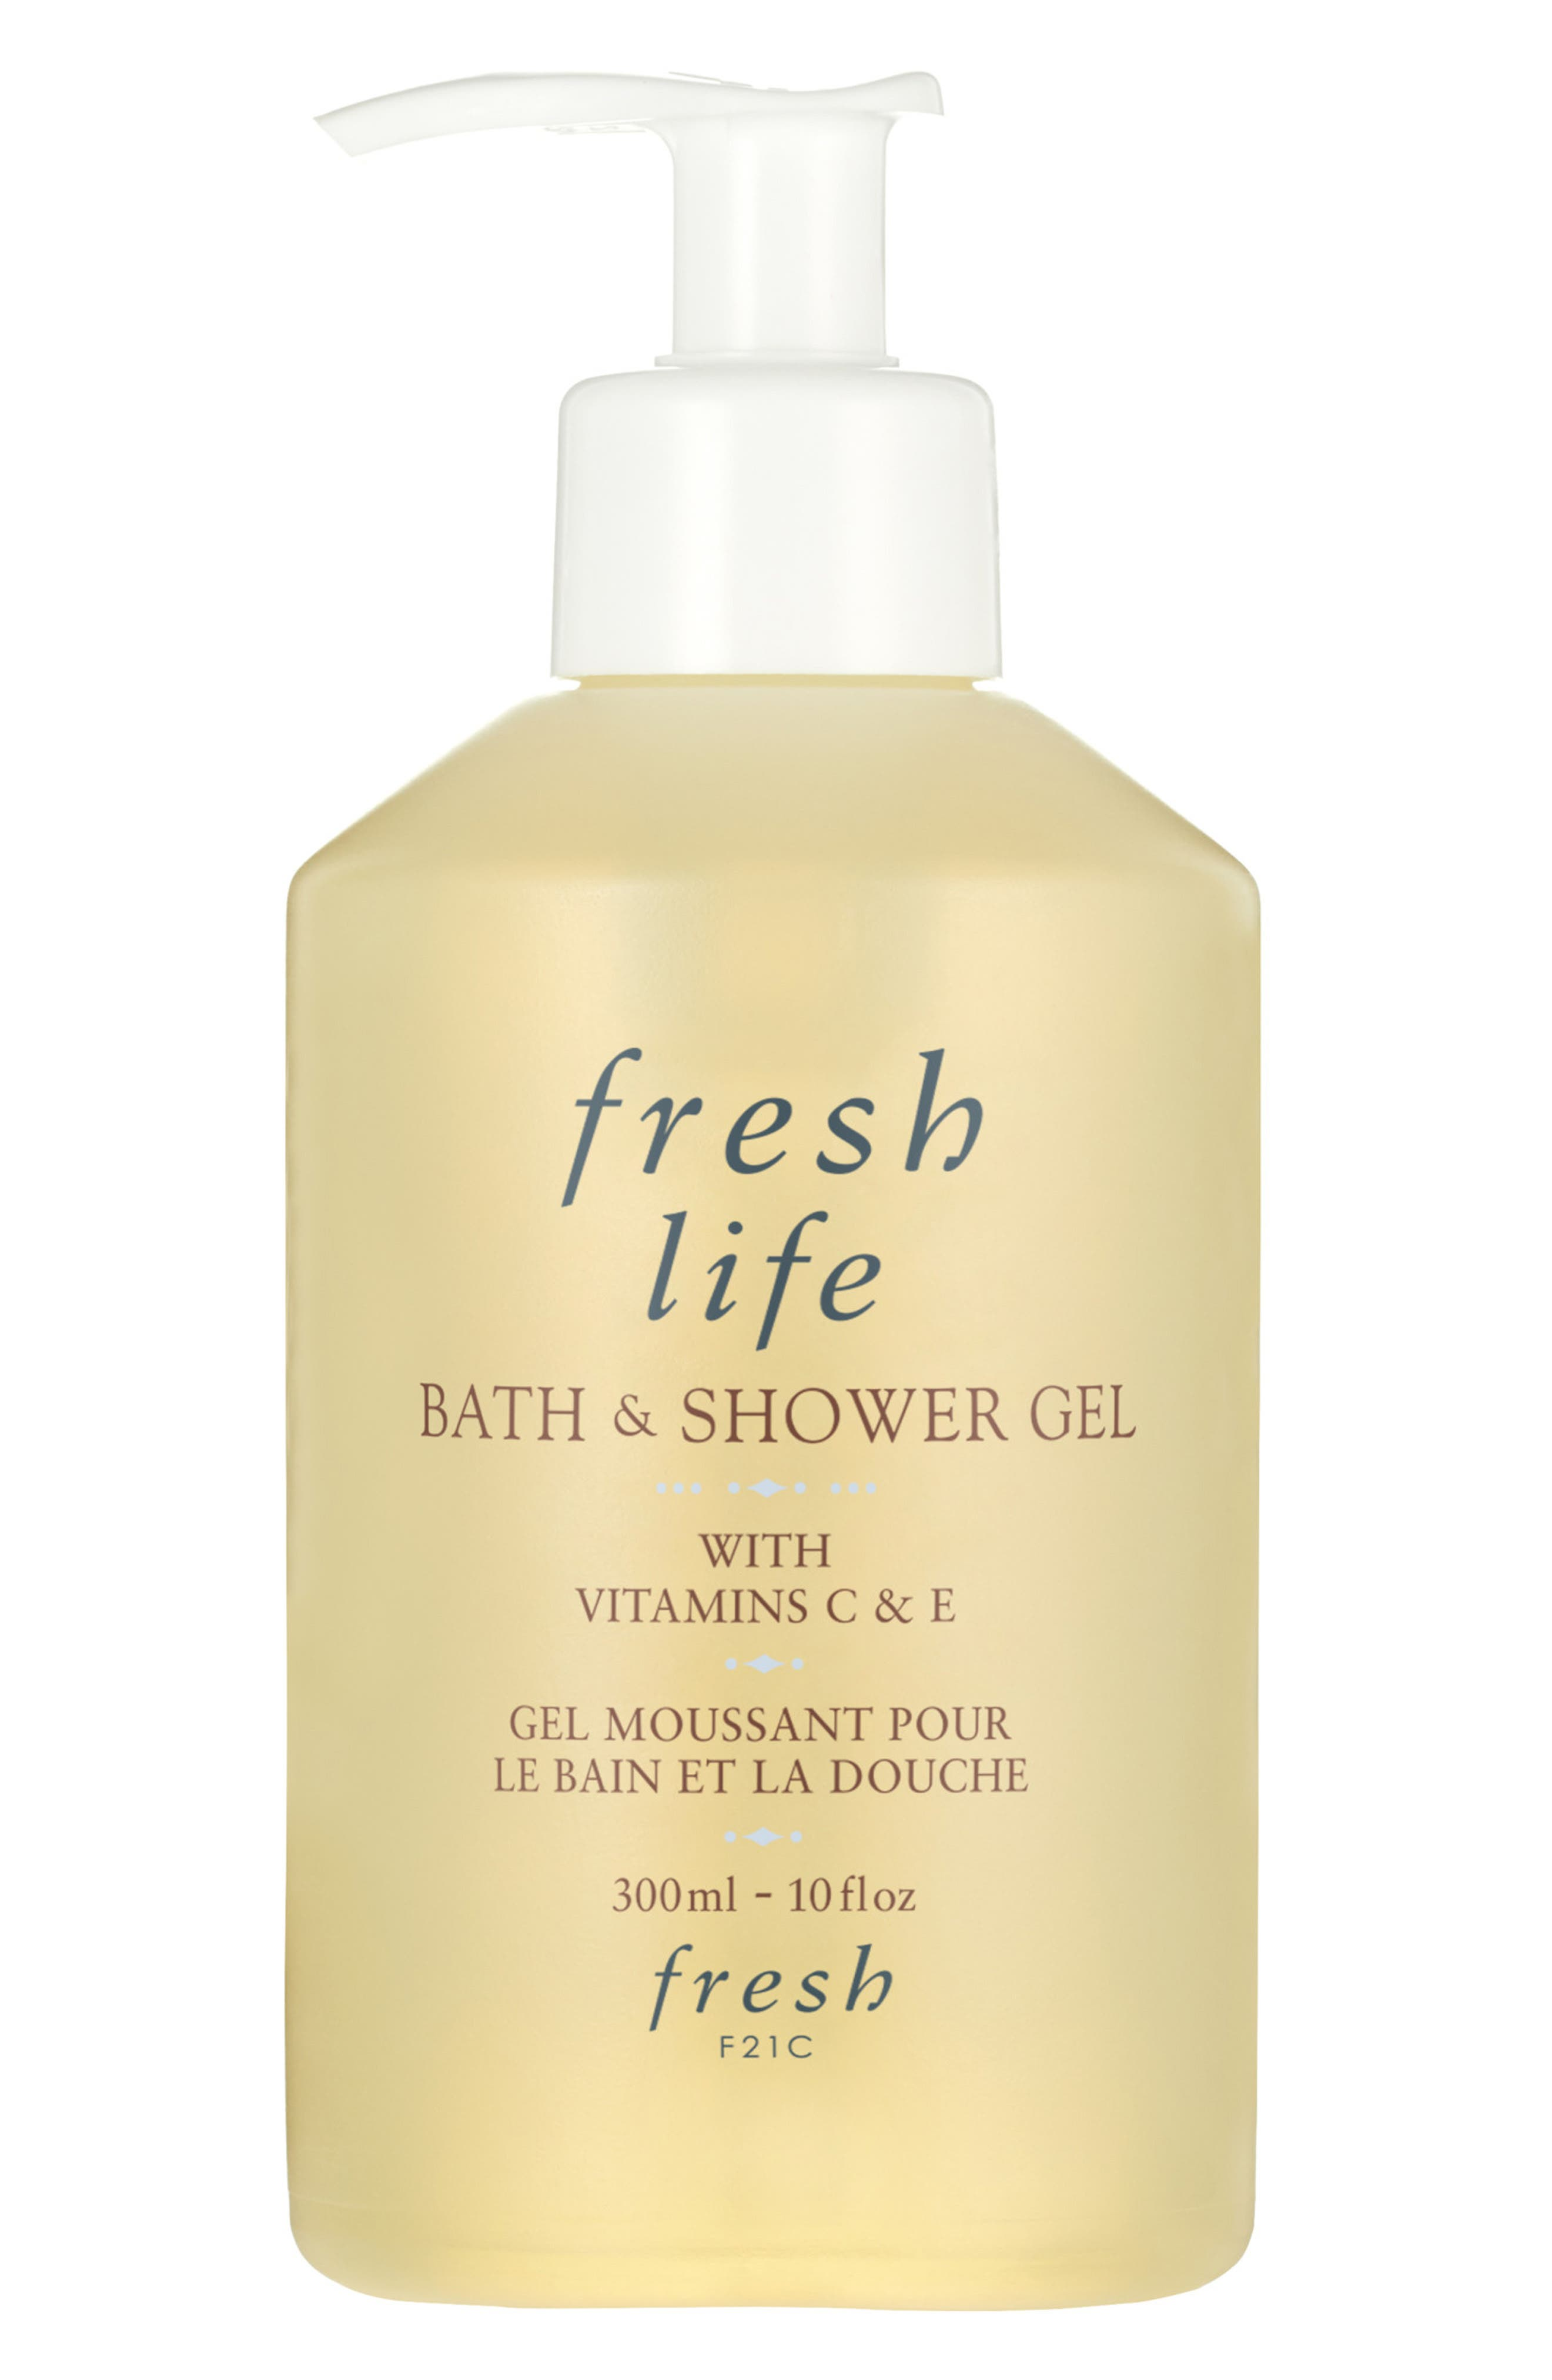 What it is: An invigorating shower gel with nourishing shea butter and vitamins C and E to gently cleanse the skin. What it does: This foaming shower gel is enriched with citrus fruit extracts, nourishing shea butter and vitamins C and E to gently cleanse and revitalize your skin. How to use: Apply to wet skin, lather, then rinse. Style Name: Fresh Life Bath & Shower Gel. Style Number: 5934278. Available in stores.